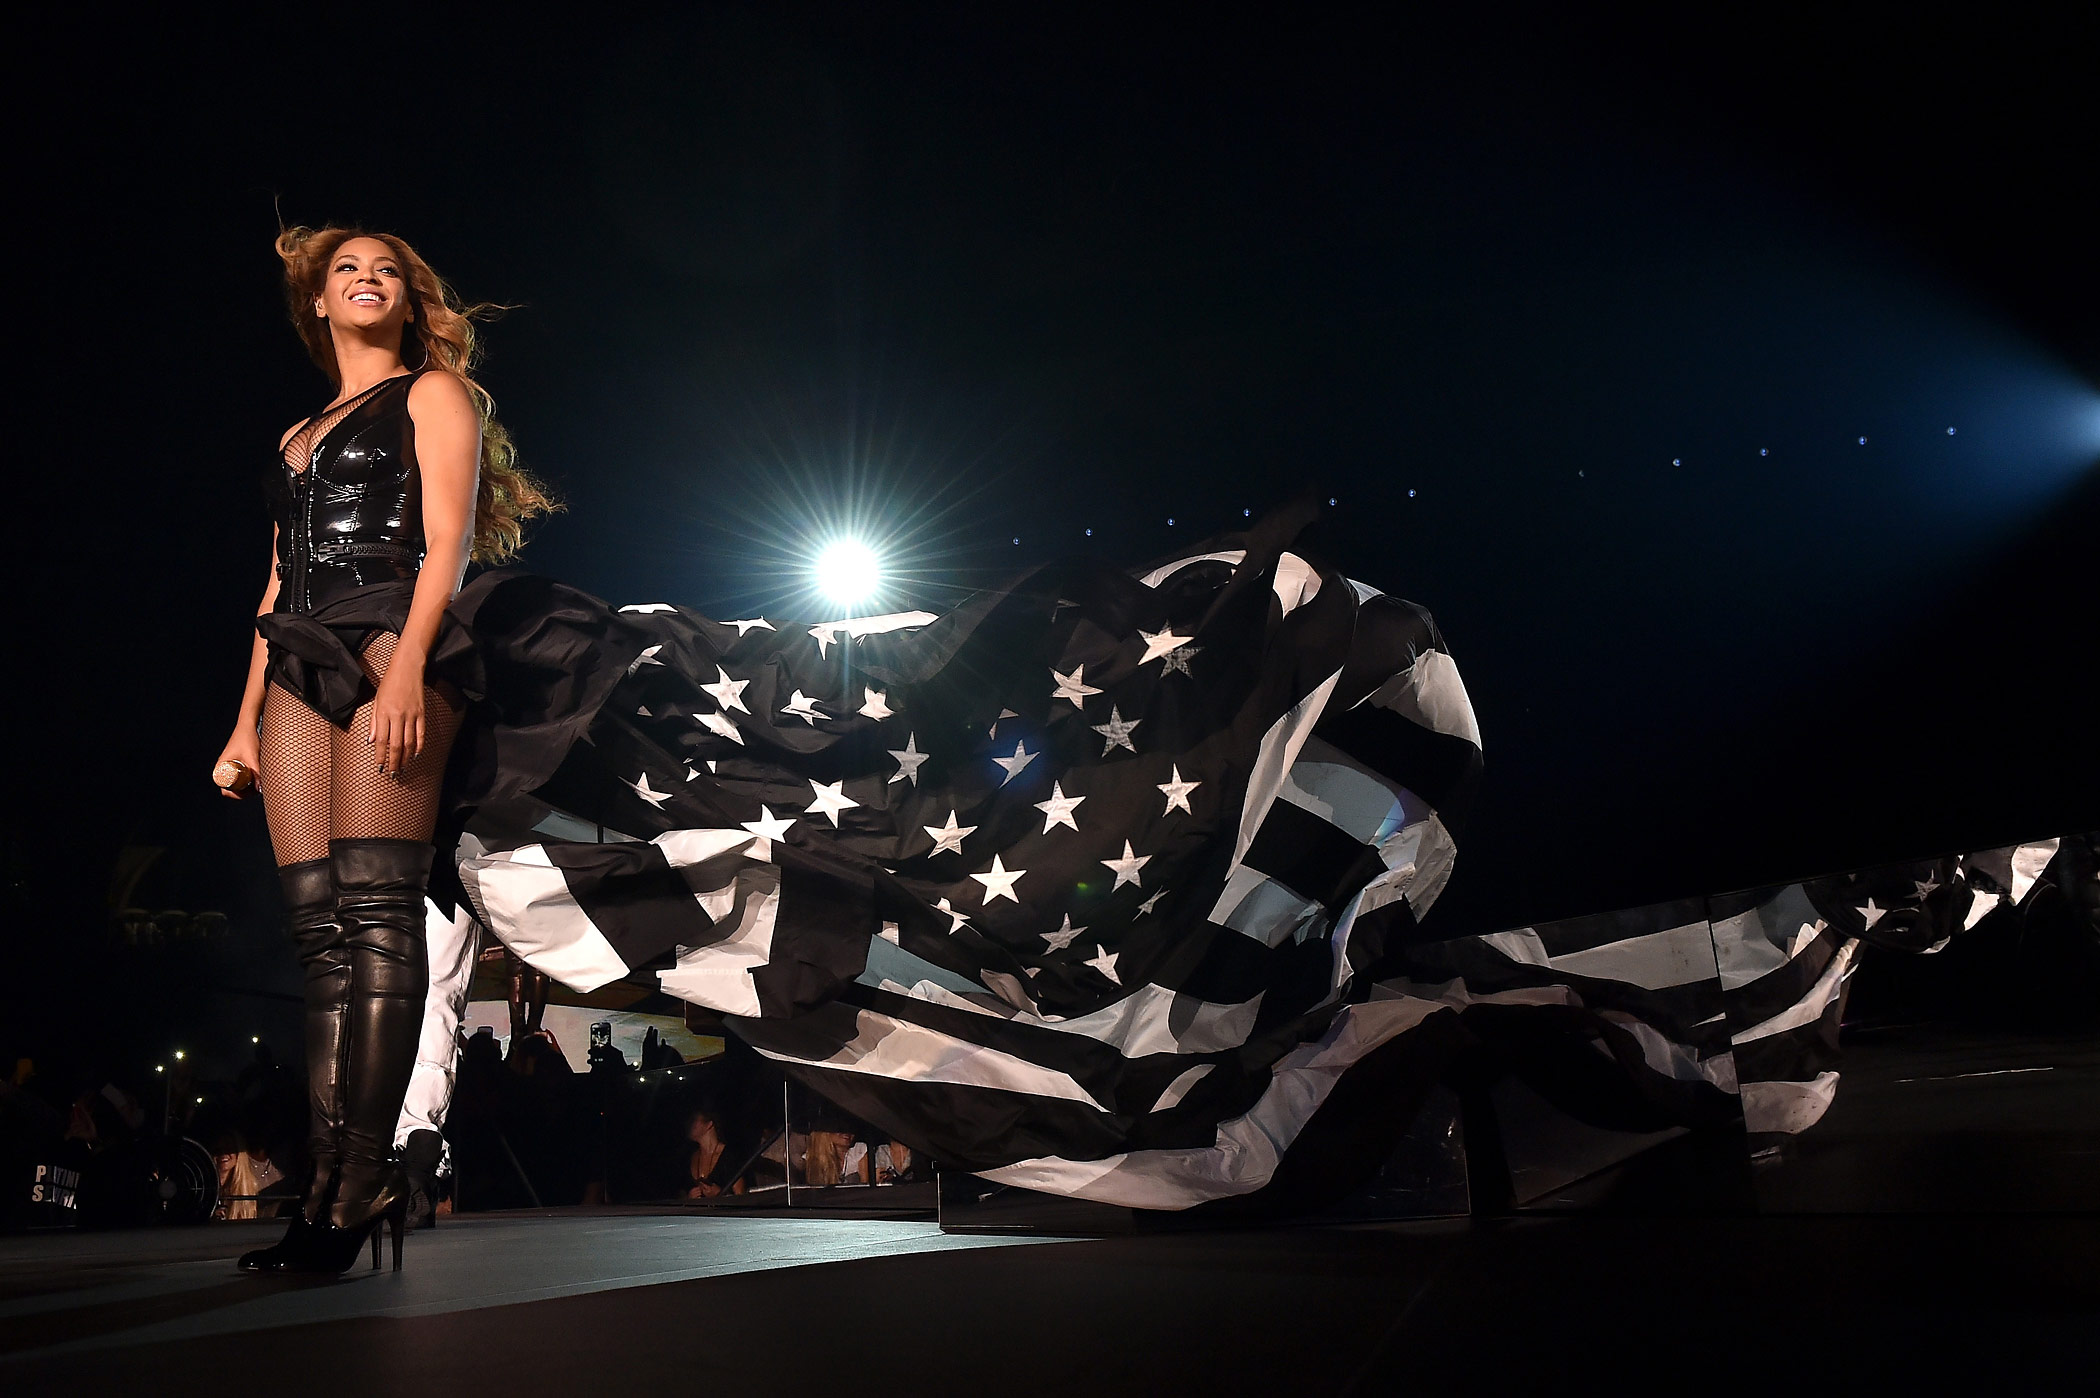 Beyonce performs during the  On The Run Tour: Beyonce And Jay-Z  at Minute Maid Park on July 18, 2014 in Houston, Texas.